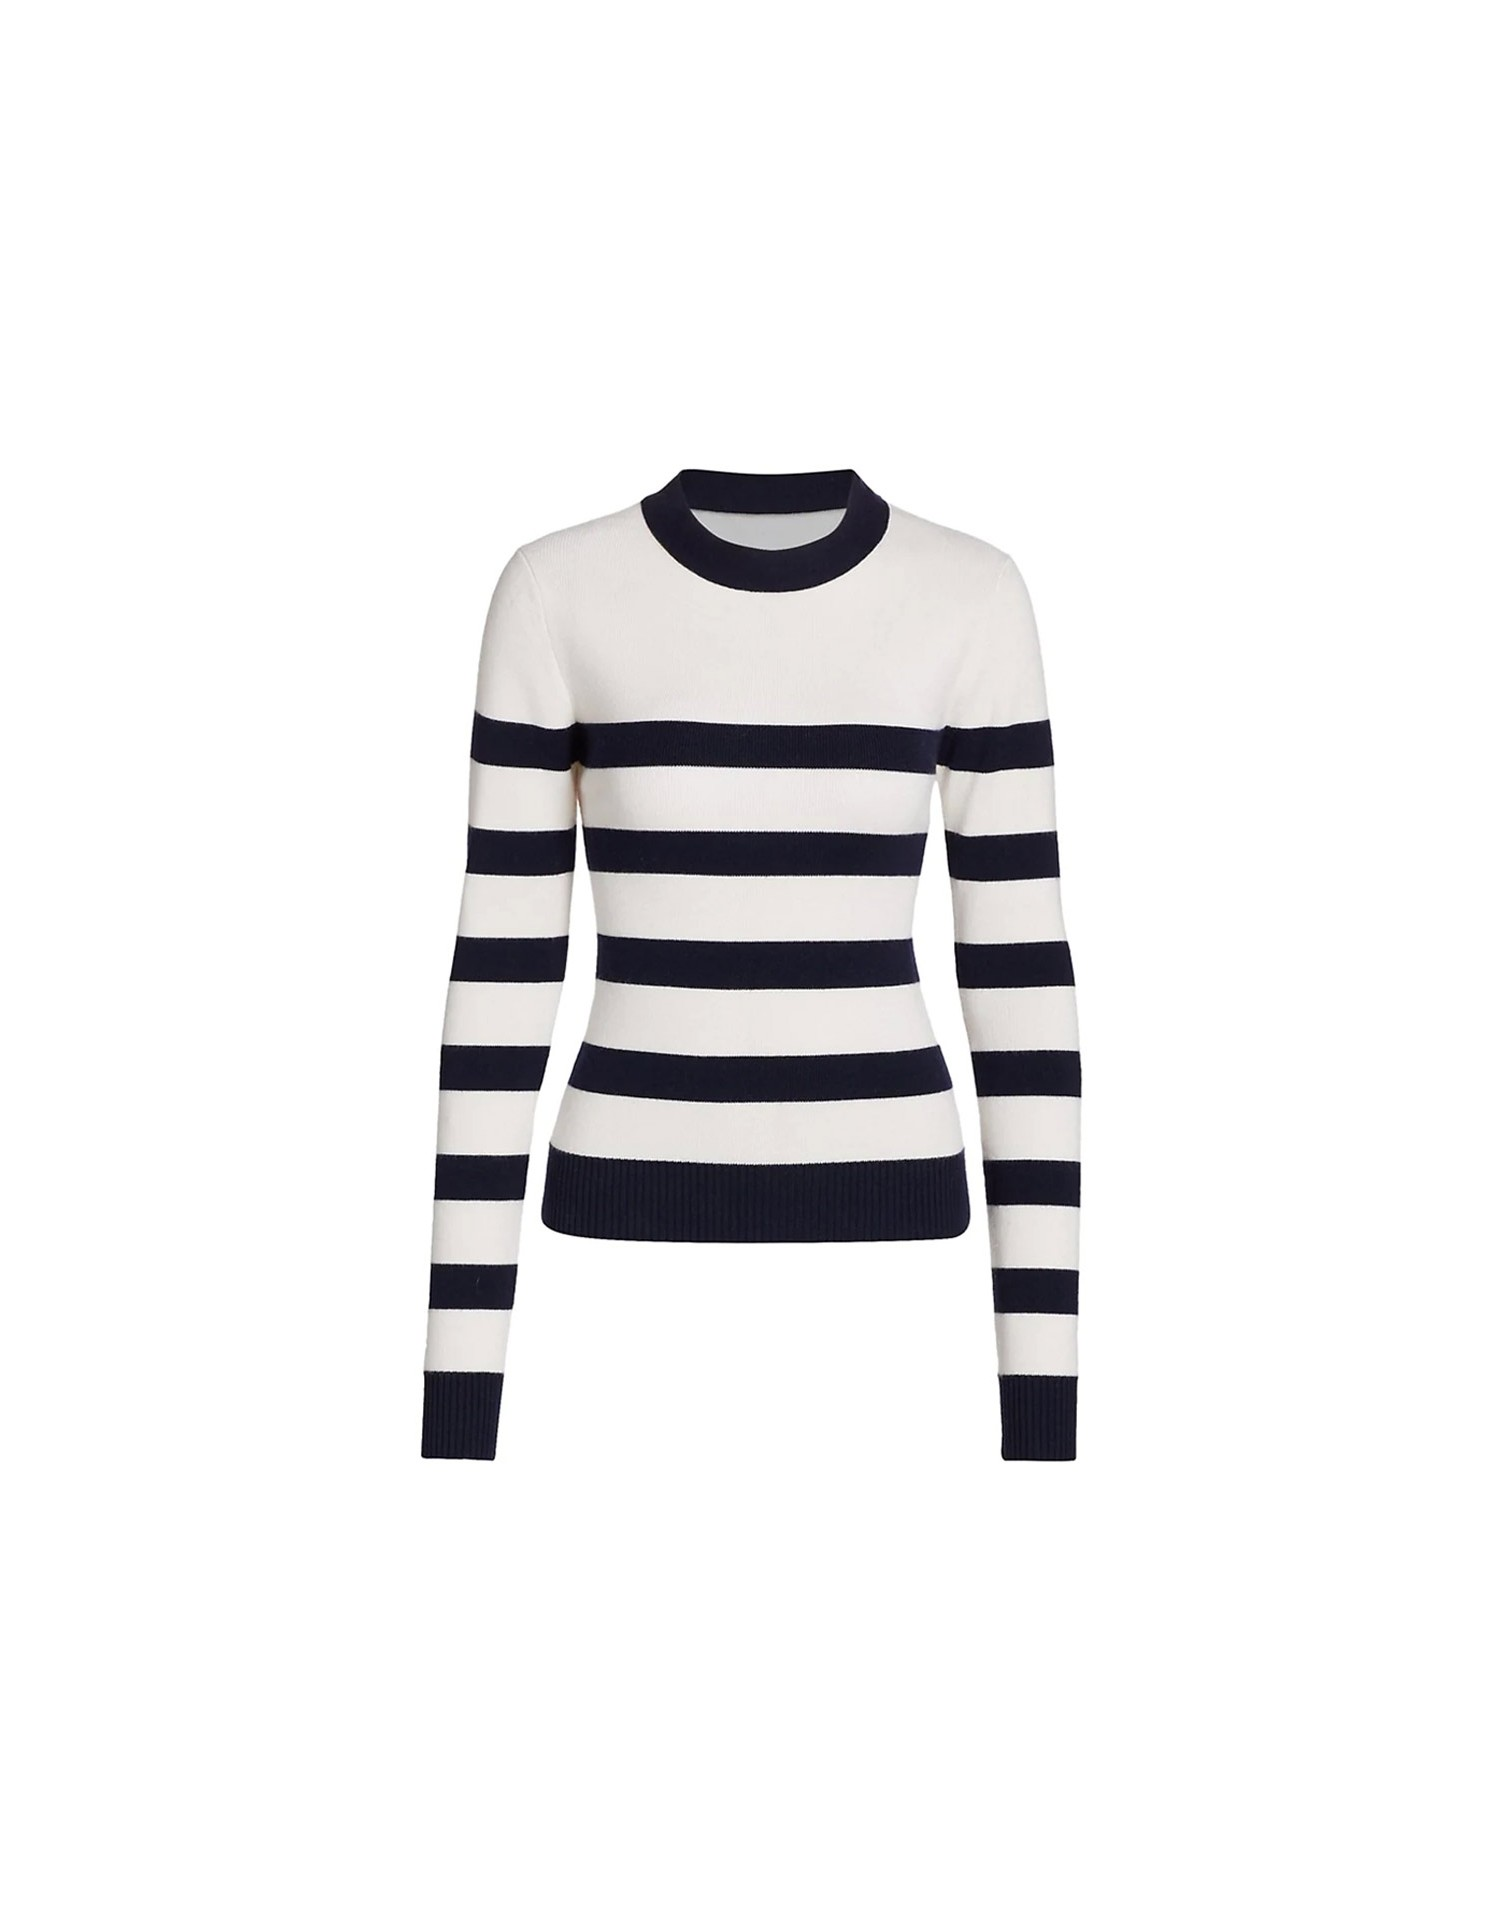 MONSE Cut Out Stripe Knit Top in Midnight and Ivory Flat Front